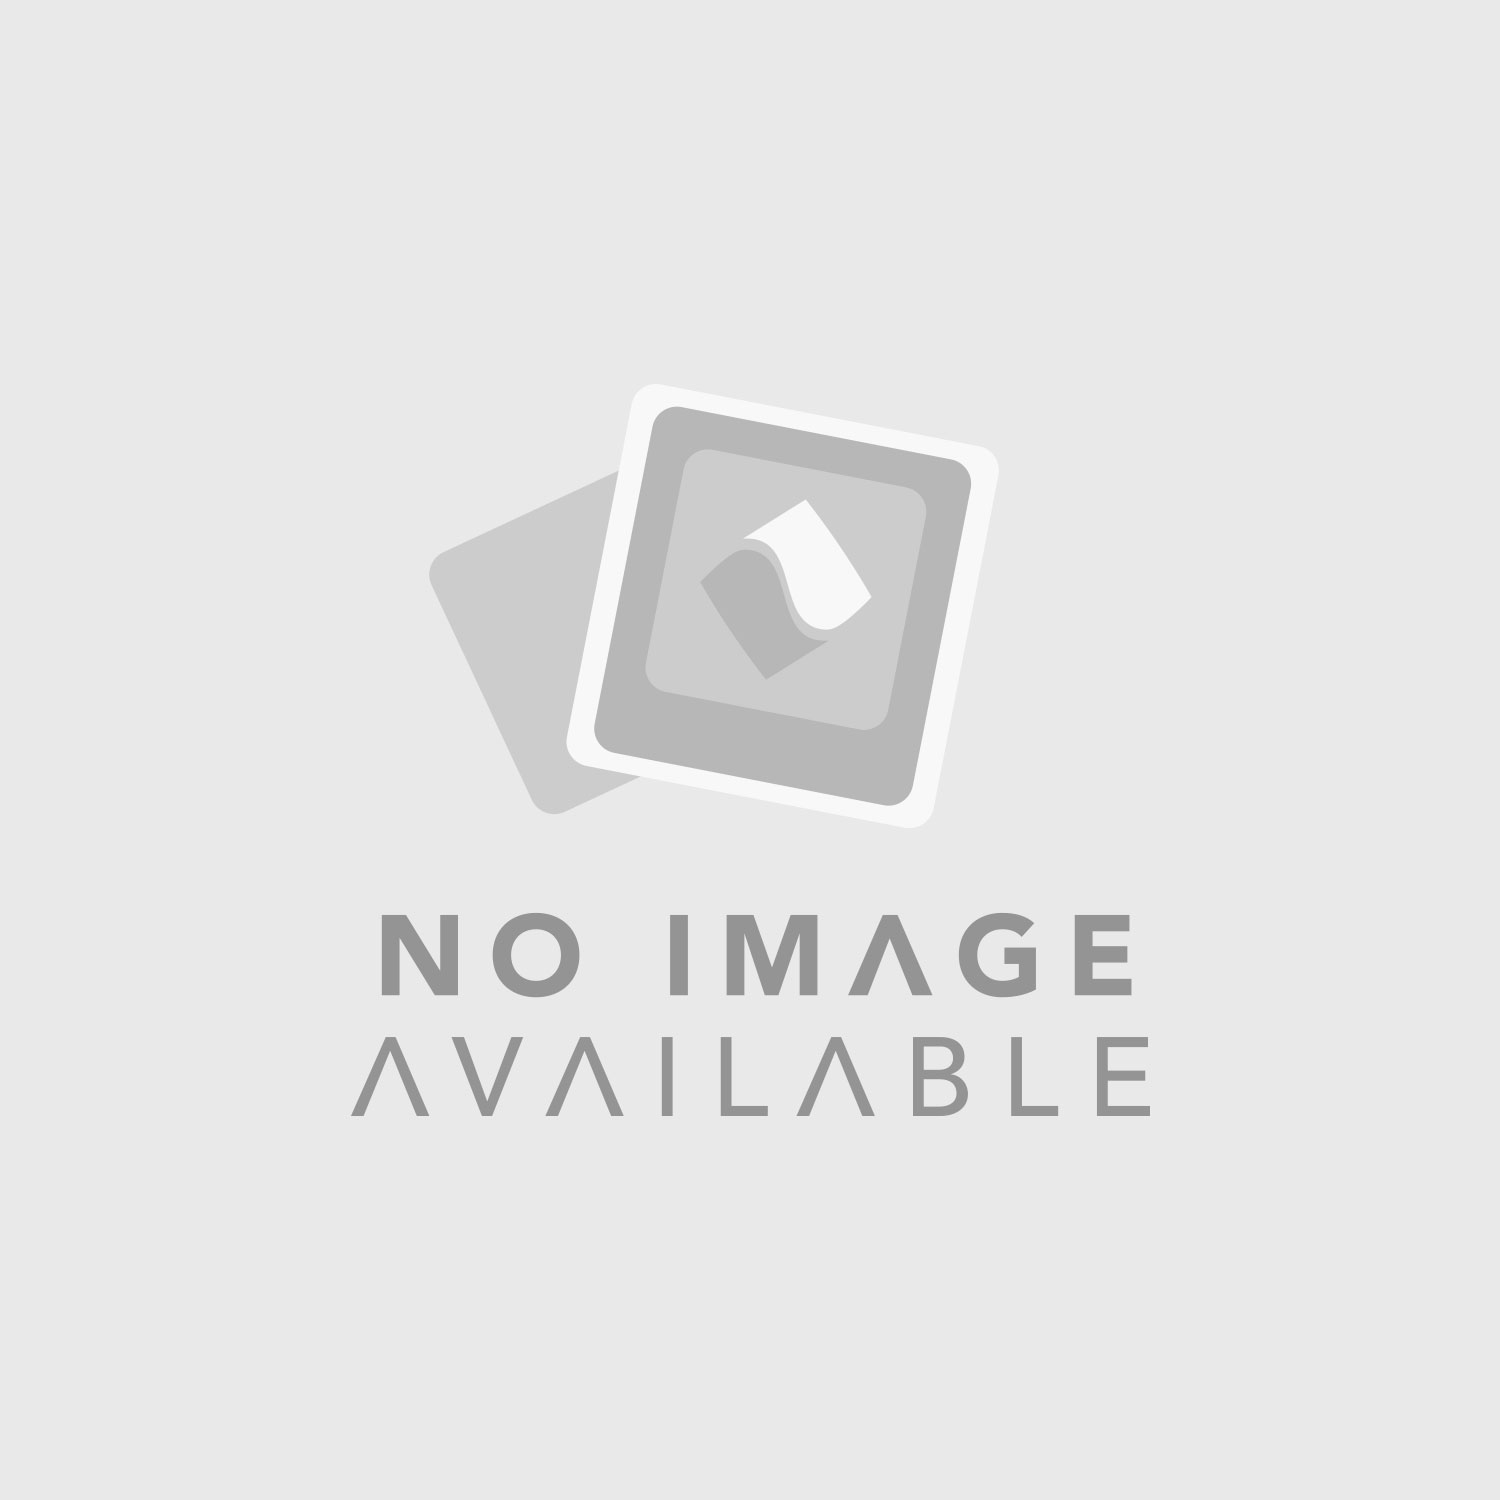 SKB 5FC-1813-5 Replacement Cubed Foam for 3i-1813-5-Series Cases